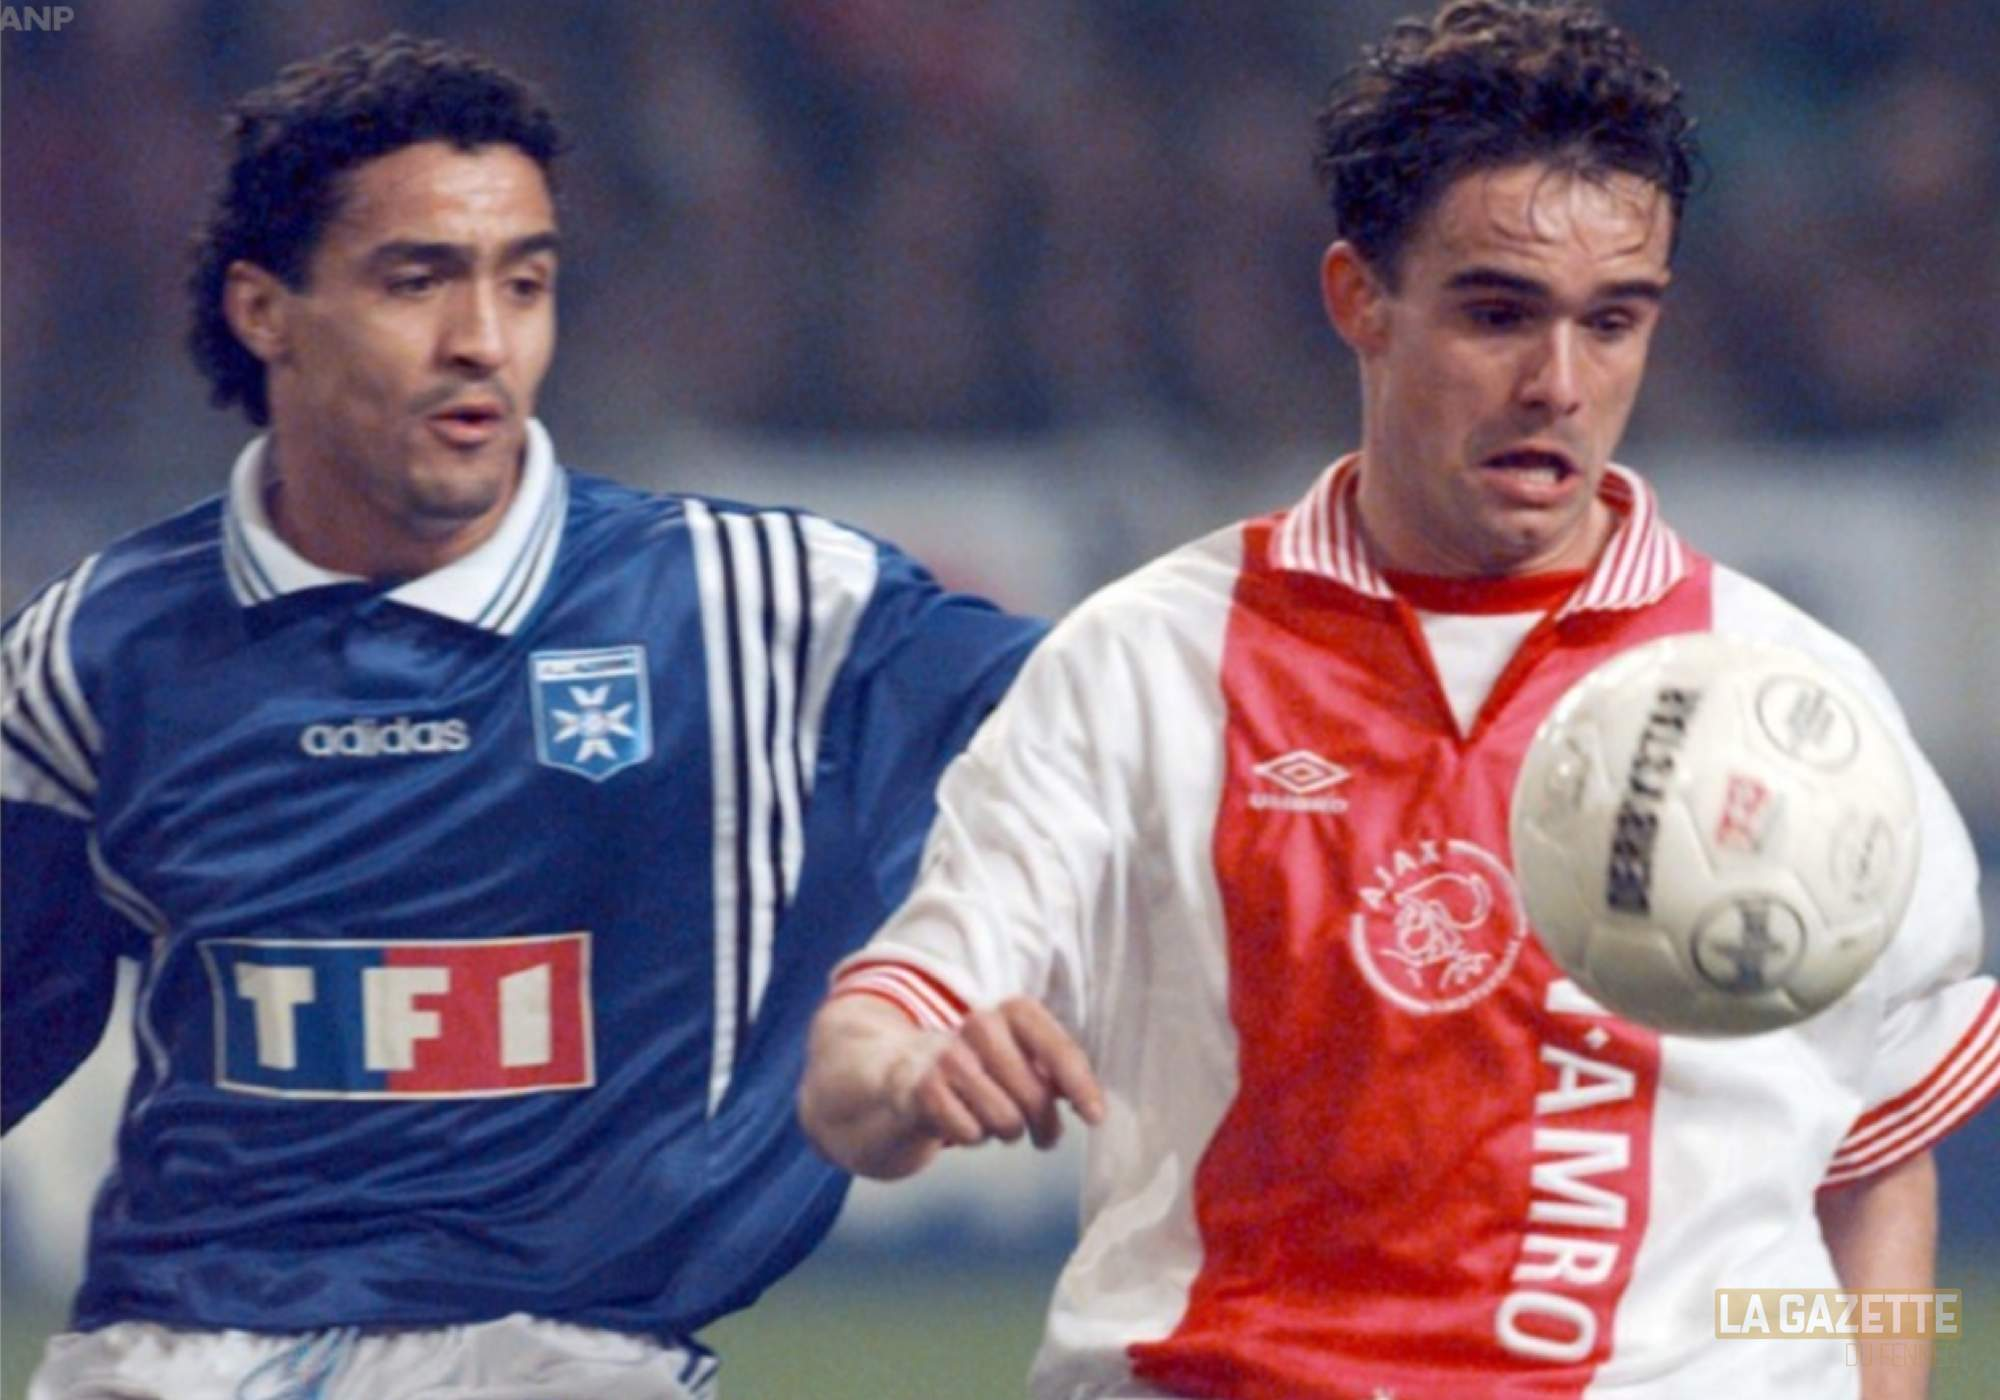 tasfaout ajax amsterdam 1997 auxerre